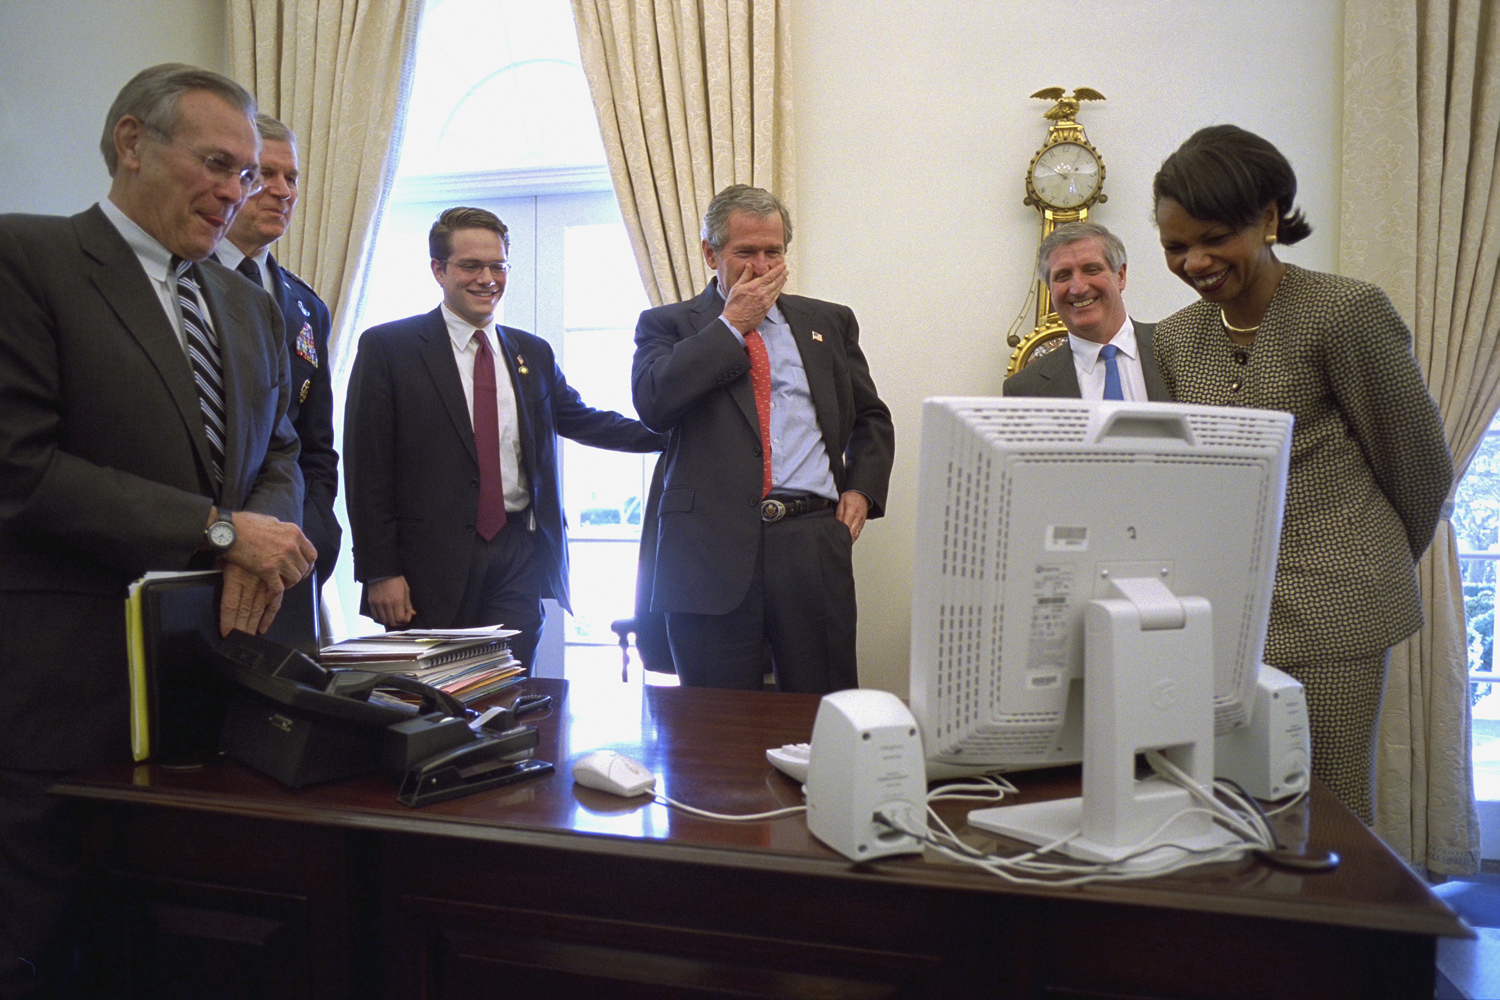 "Feb. 12, 2003. The president watches a Saturday Night Live video on an aide's computer in the Outer Oval Office. Joining him are from left: Secretary of Defense Donald Rumsfeld, General Richard Myers of the Joint Chiefs of Staff, personal aide Blake Gottesman, Chief of Staff Andy Card and National Security Advisor Condoleezza Rice.""He took the presidency seriously but not himself, and always enjoyed a laugh at his expense."""